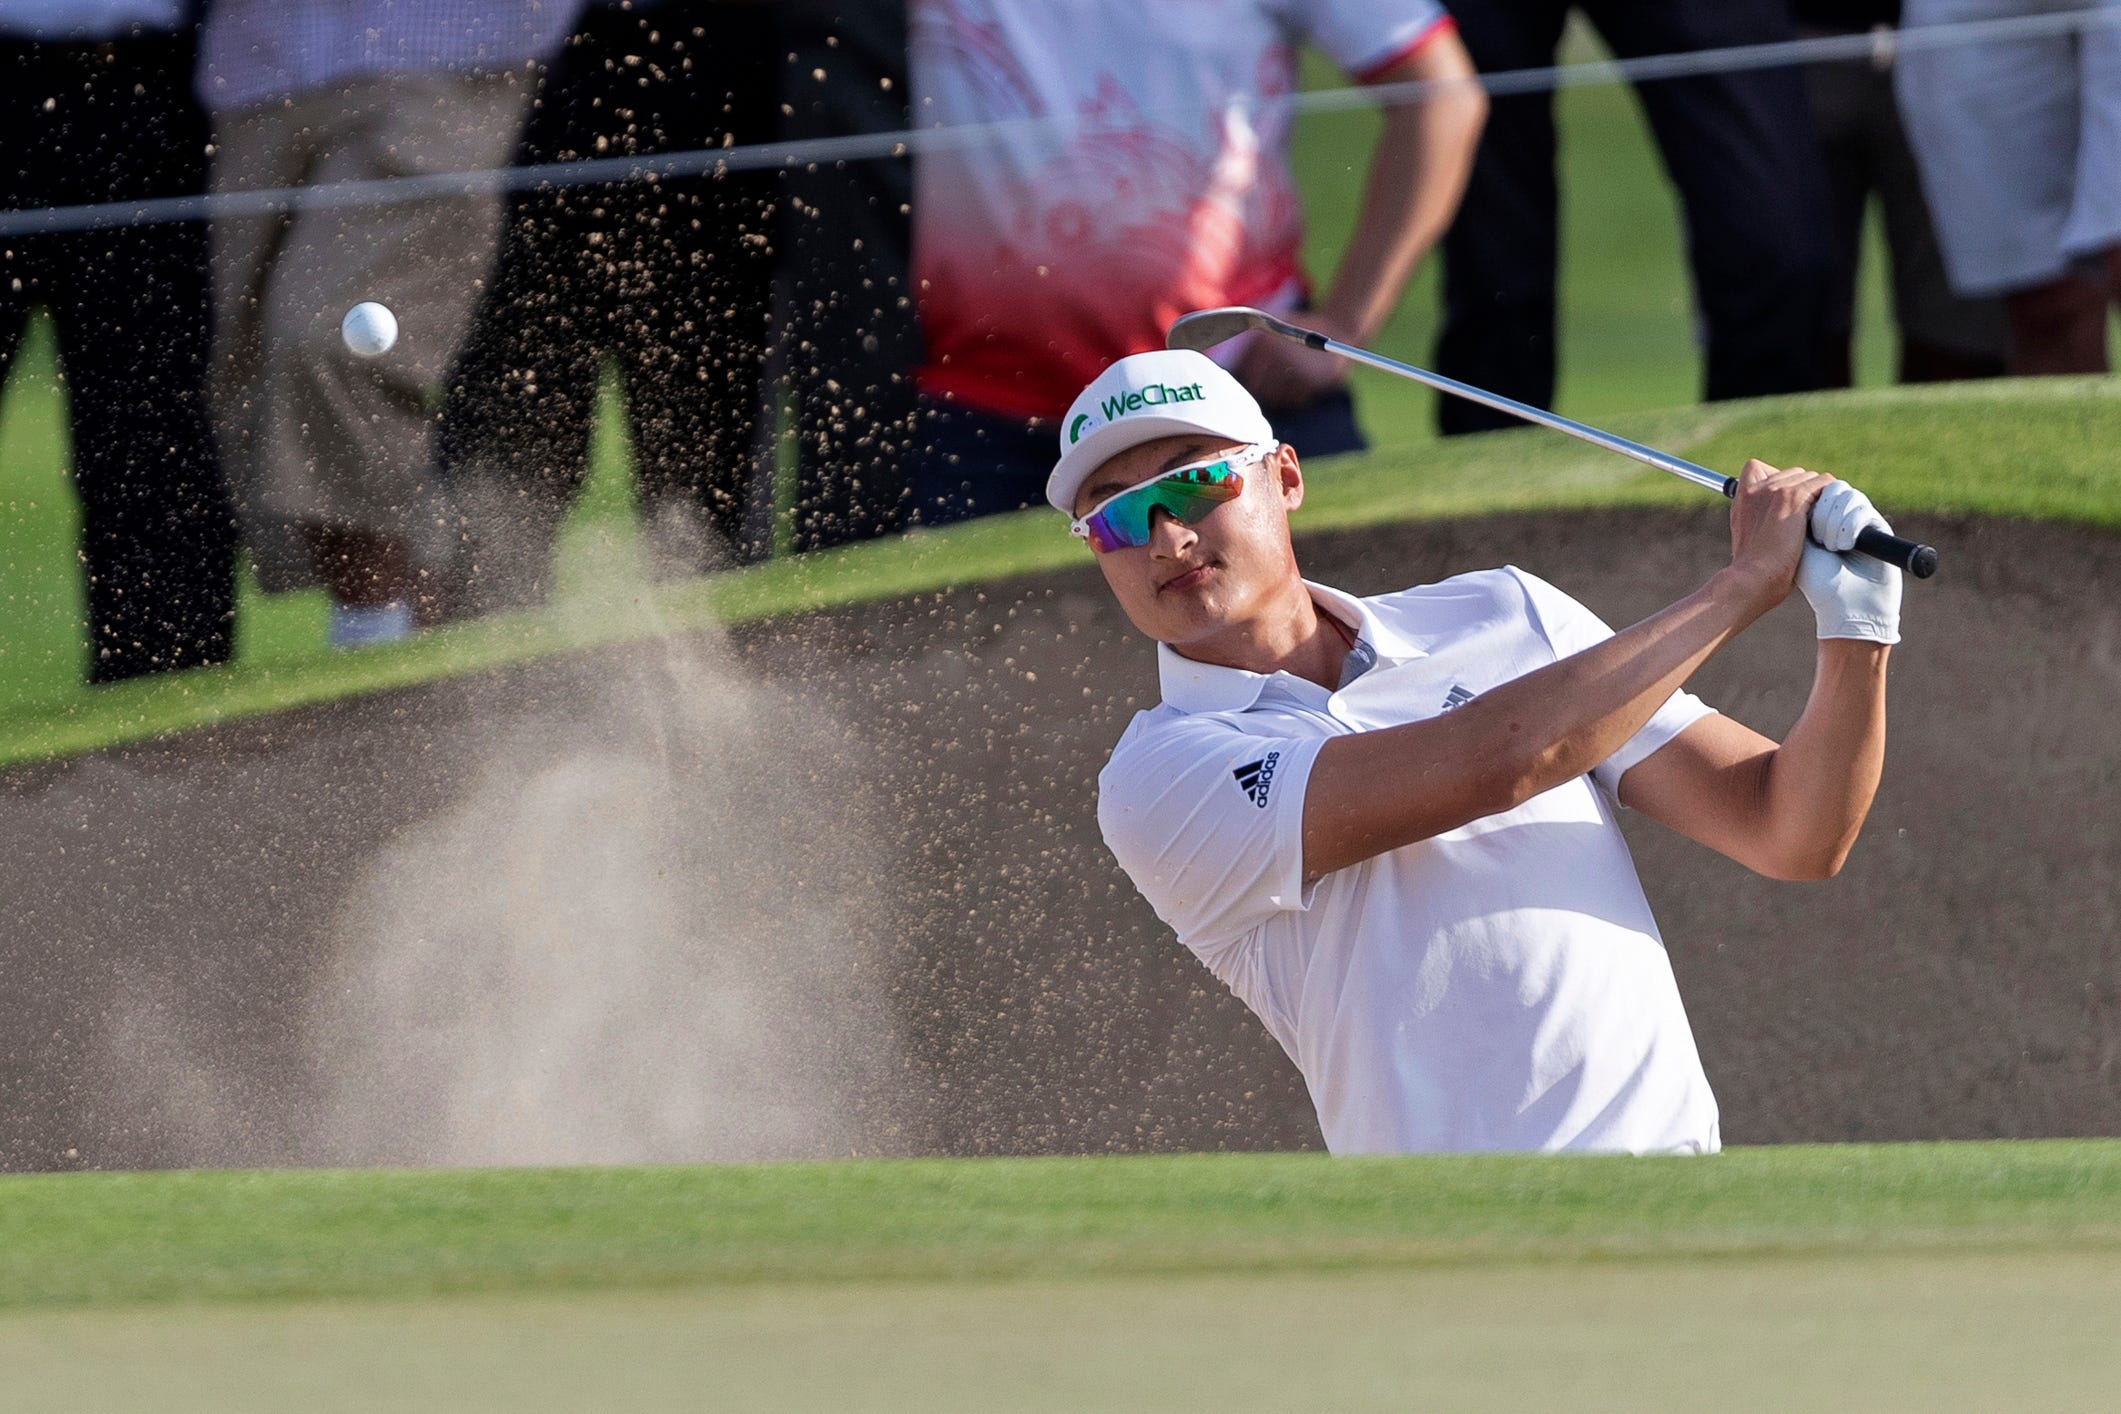 Haotong Li gets 2-shot penalty, loses out on top 10 finish due to caddie alignment